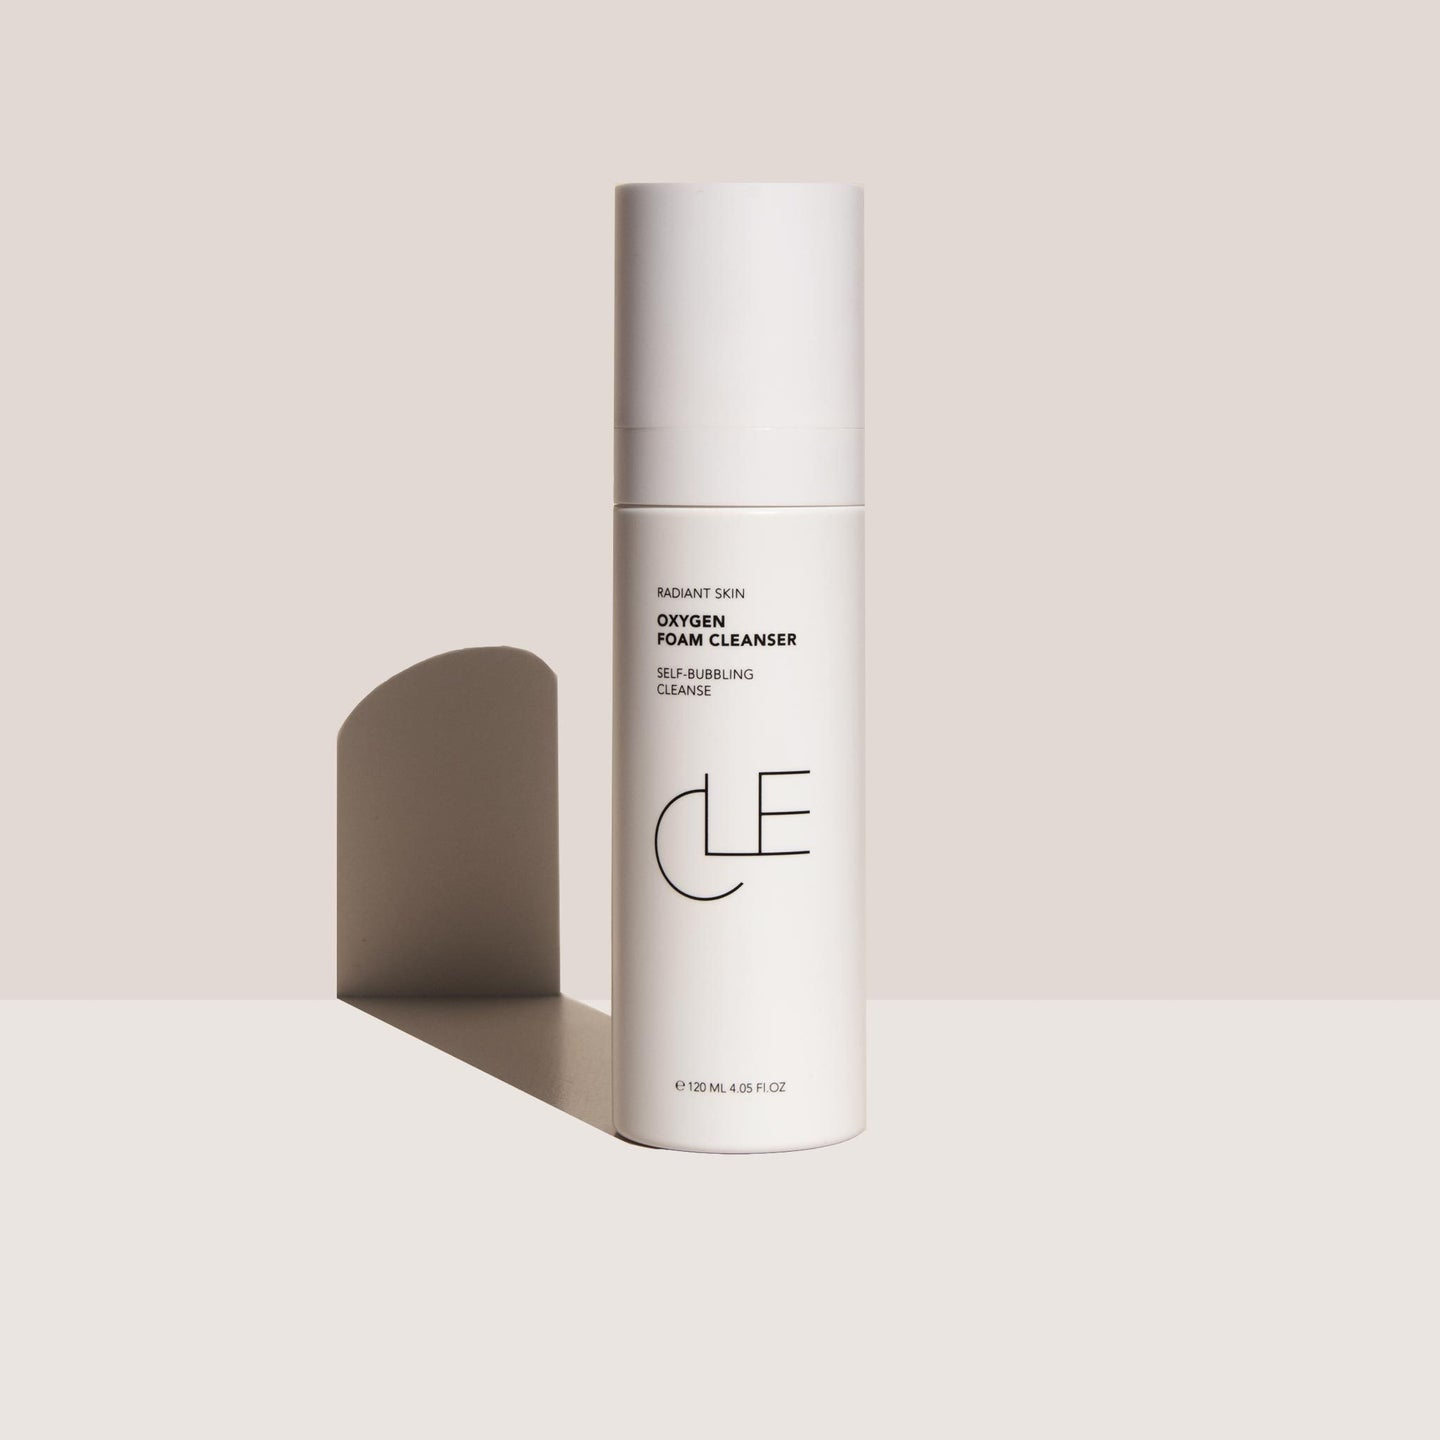 Cle Cosmetics - Oxygen Foam Cleanser, available at LCD.